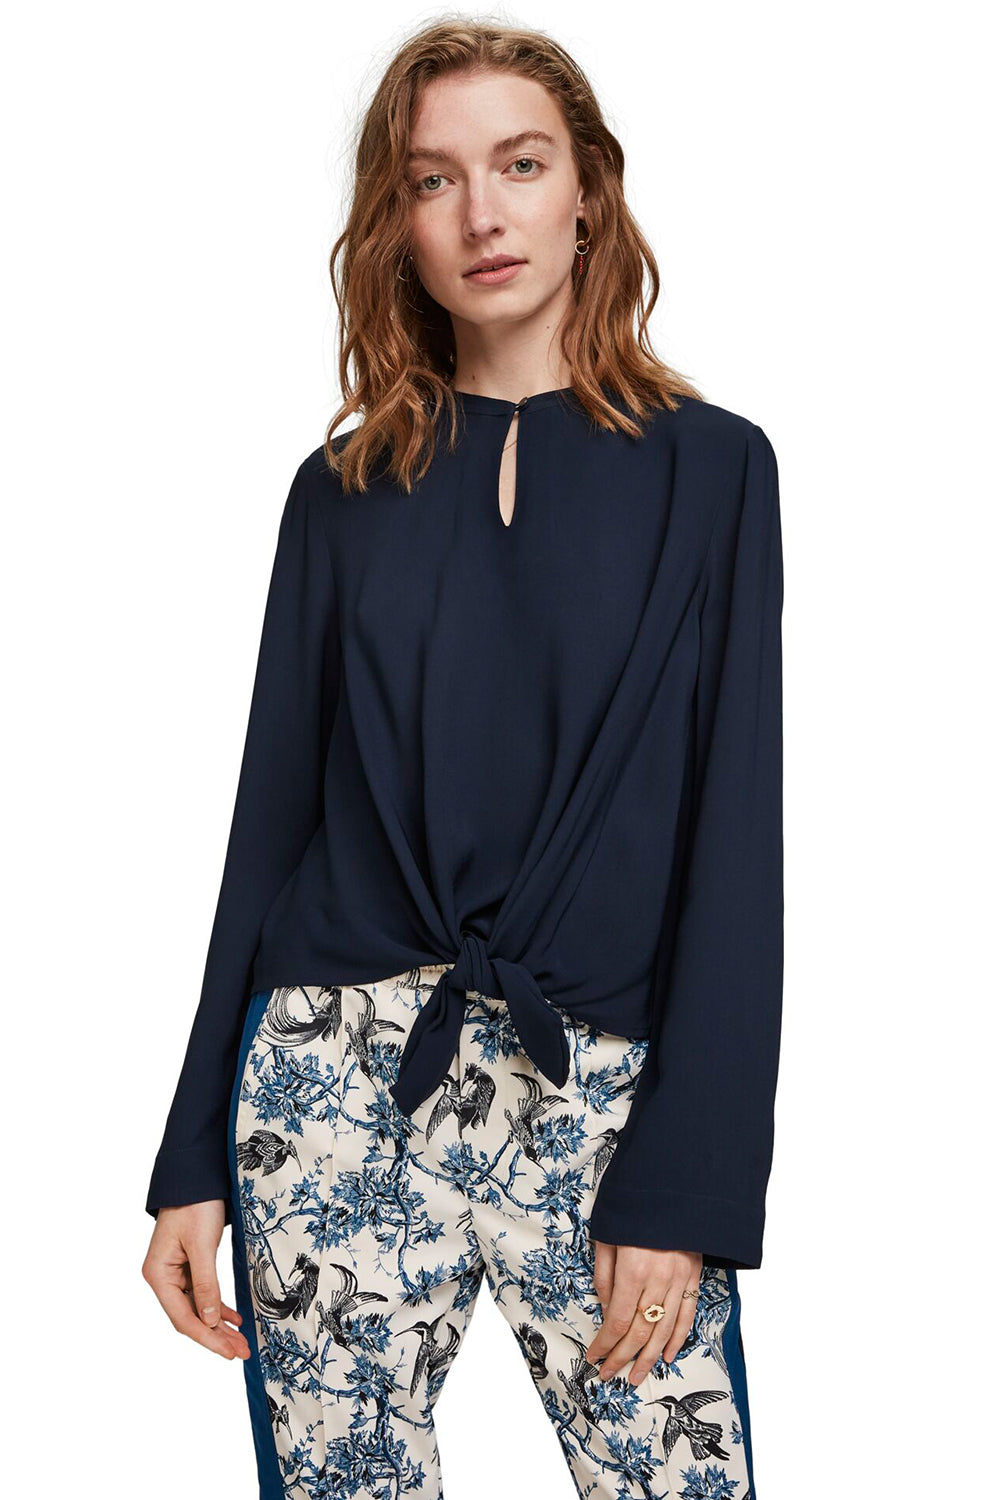 Maison Scotch / Viscose Top With Tie Detail / Night